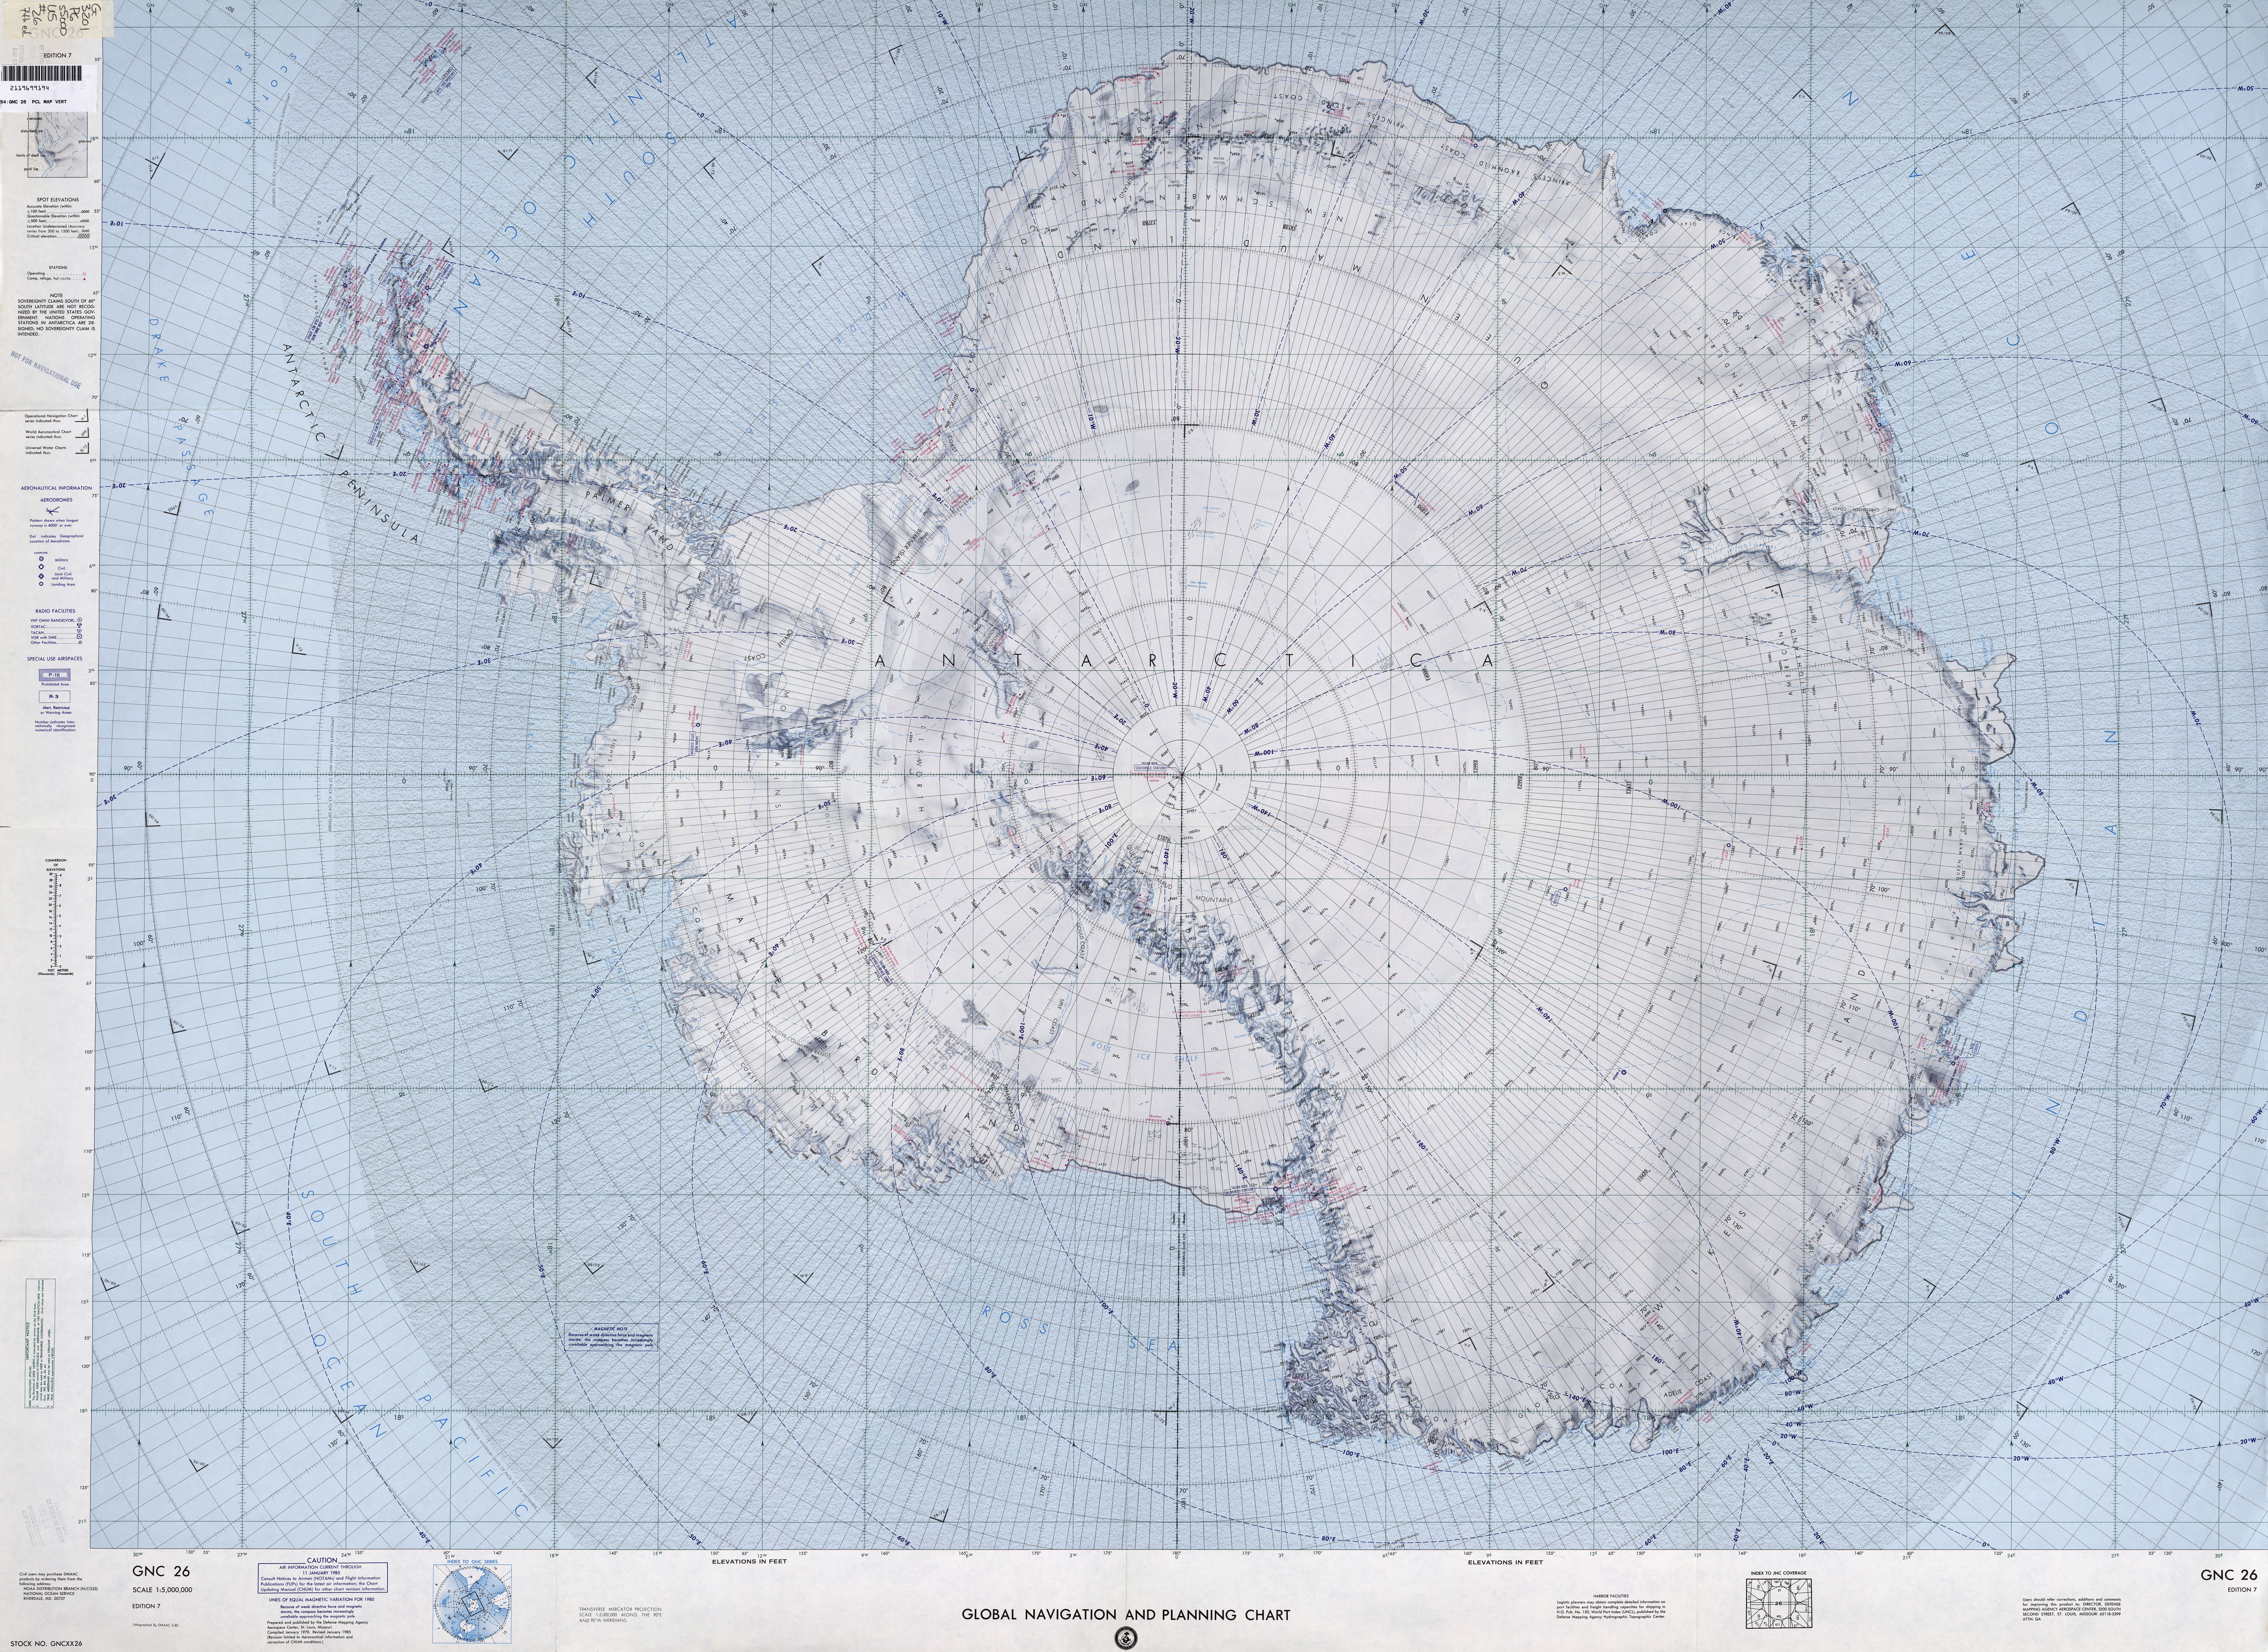 Antarctica – Global Navigation and Planning Chart, Sheet G ... on puma map, bank of america map, mcdonald's map, target map, apple store map, urban outfitters map, old navy map, at&t map, coldwater creek map,